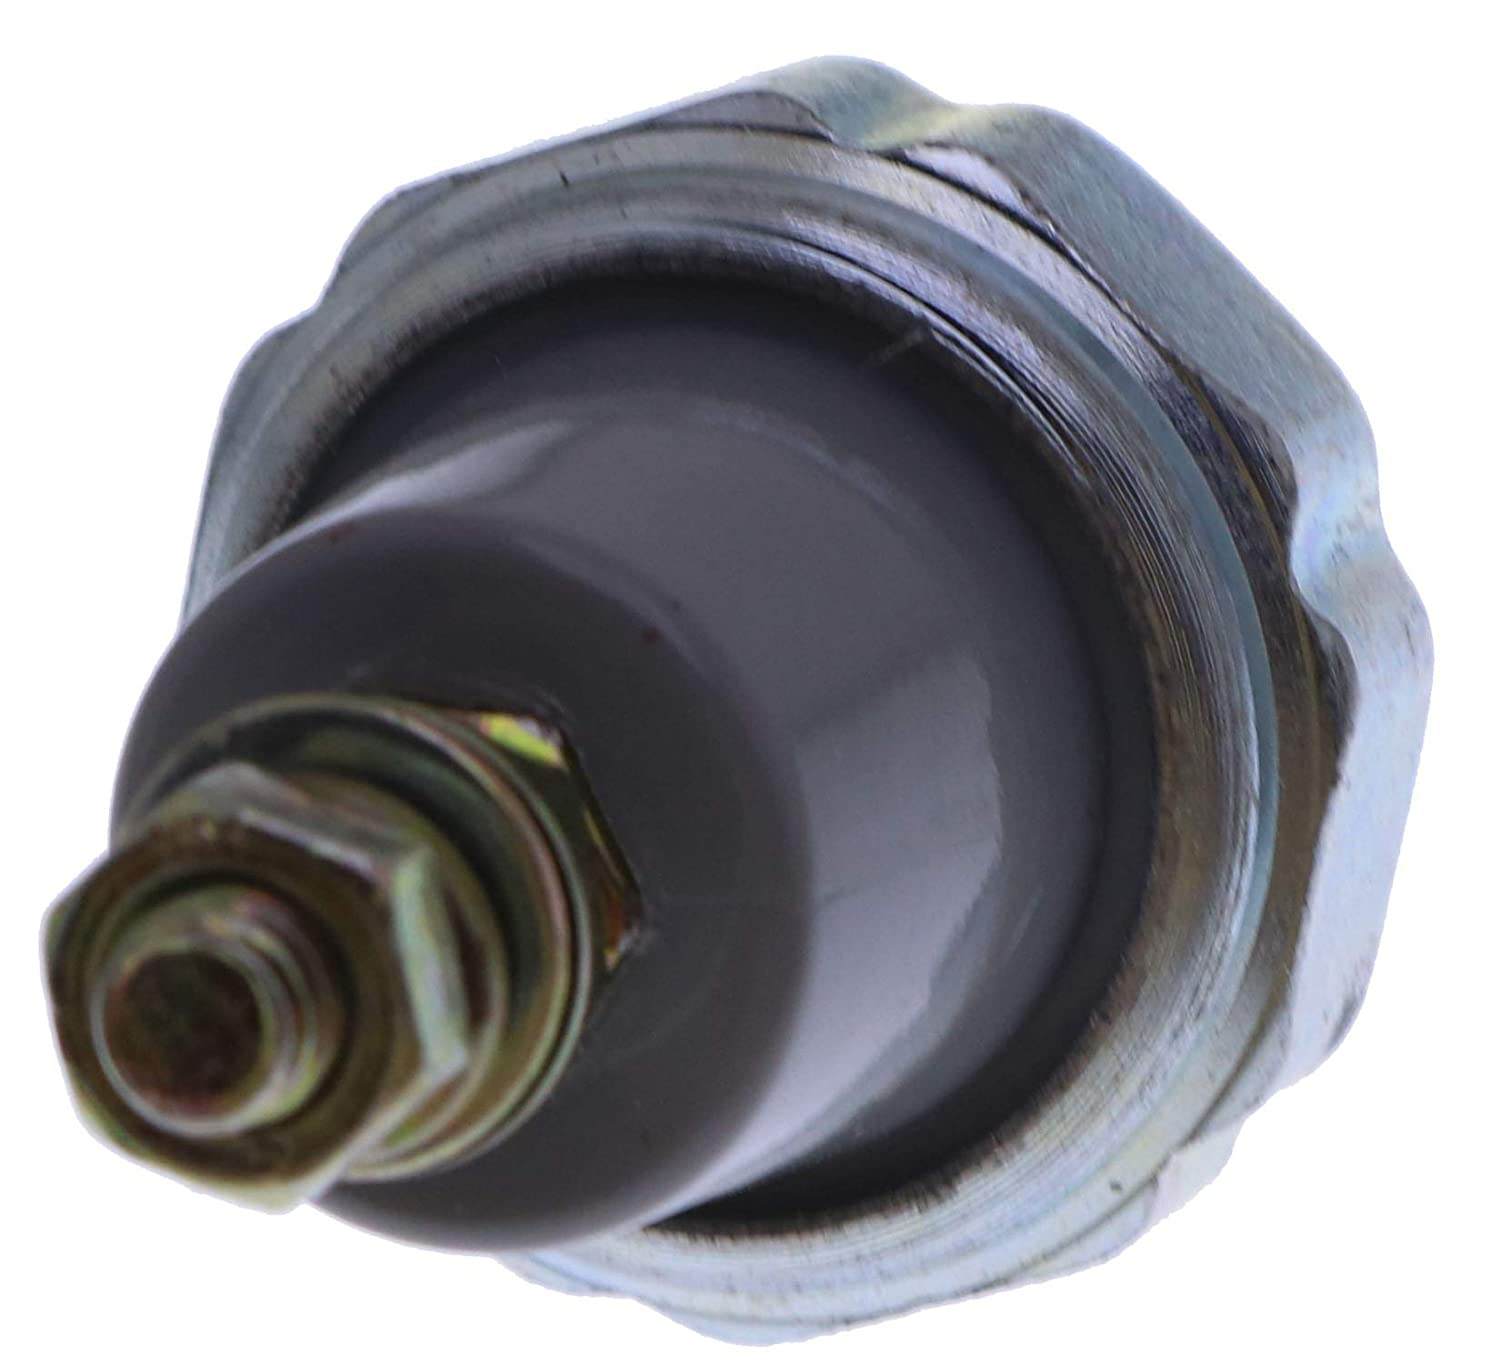 zt truck parts Oil Pressure Switch Fit for Generac 99236 99236gs 099236 G099236 Generators Power Washers